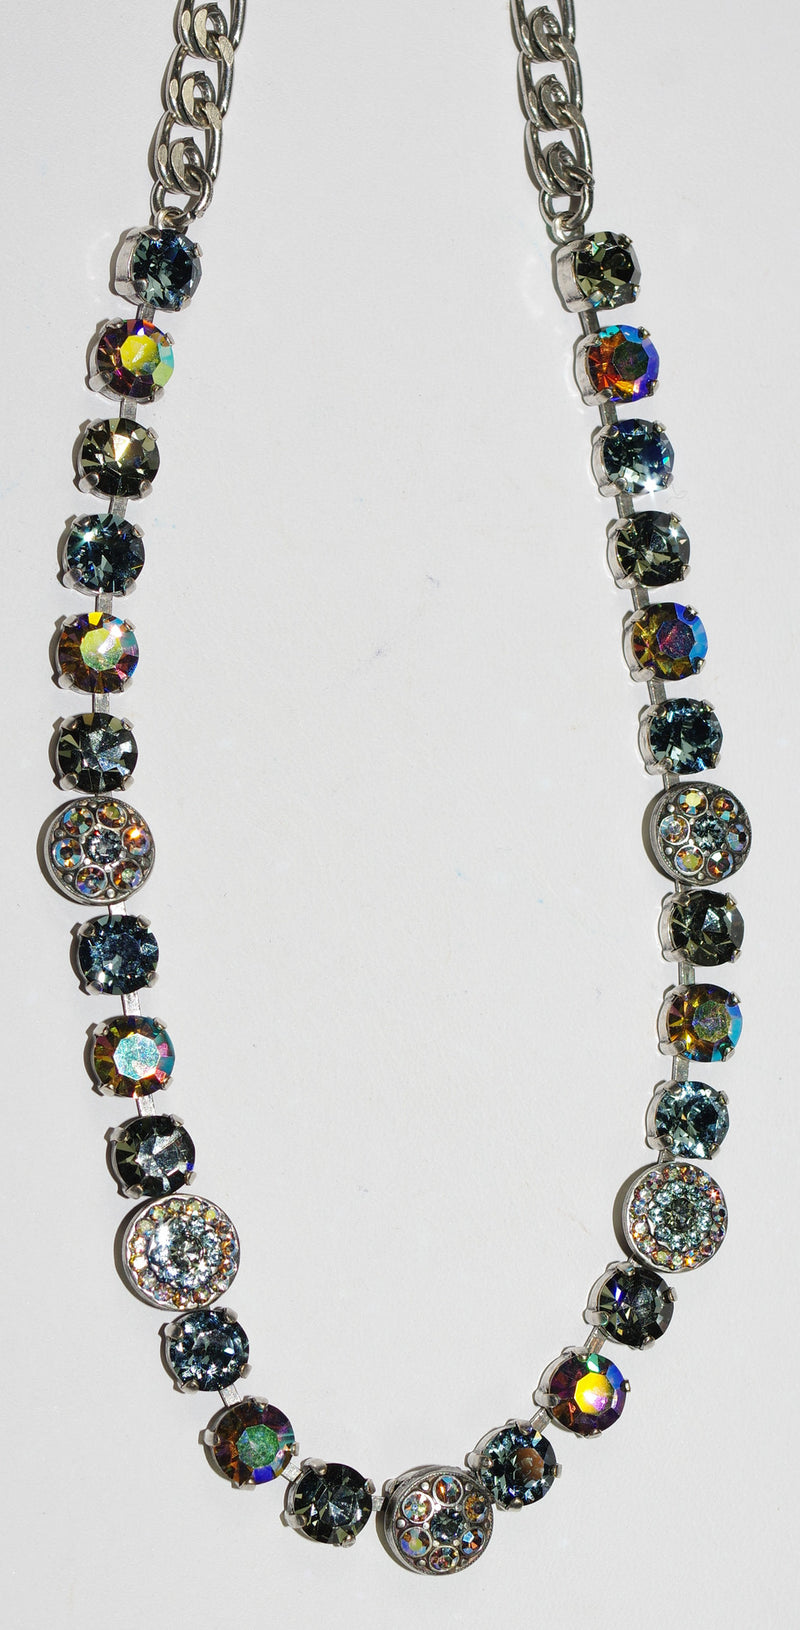 "MARIANA NECKLACE MARTINI: taupe, a/b, blue stones in silver setting, 17"" adjustable chain"